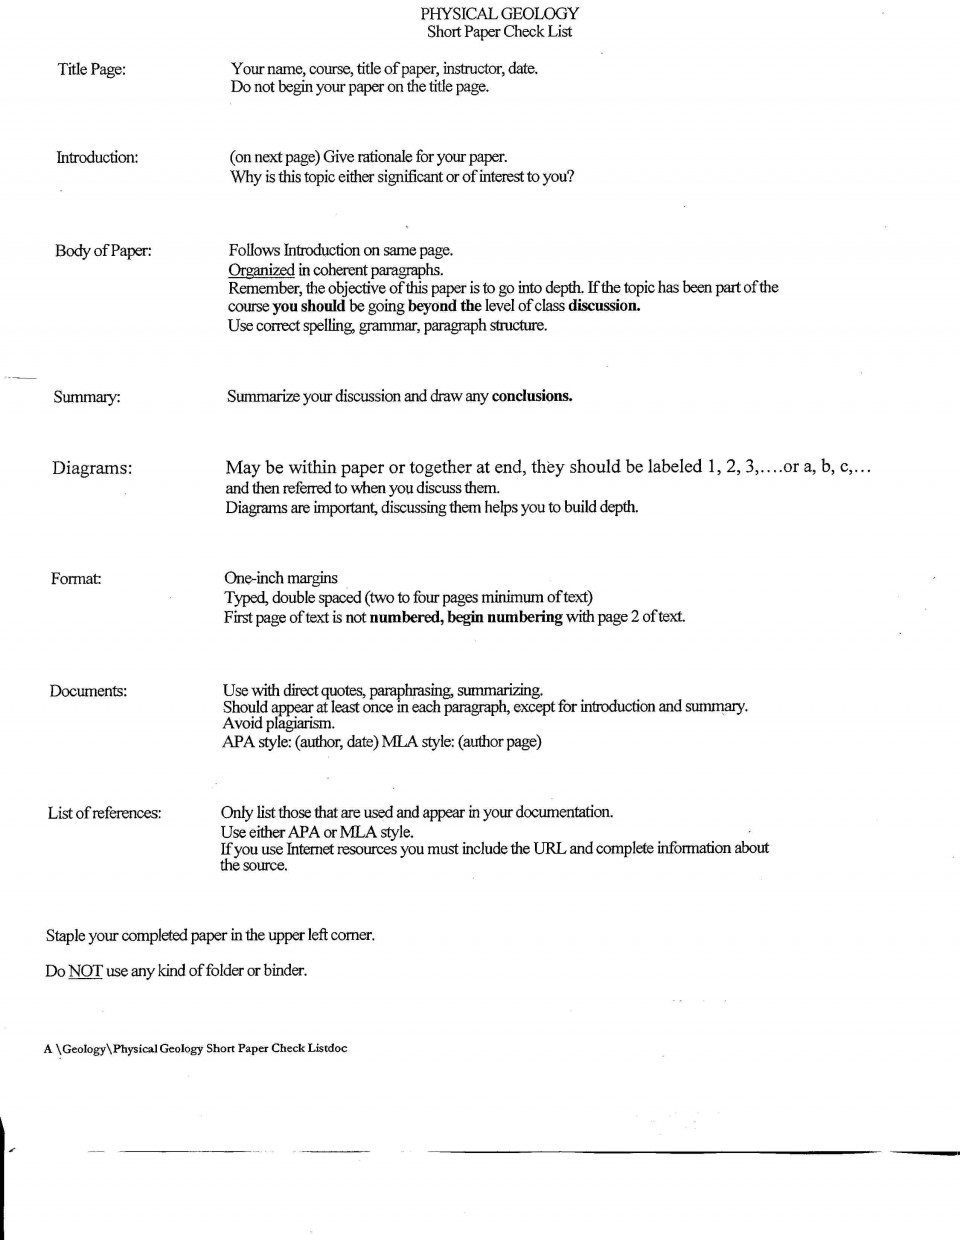 023 Short Checklist Topic For Research Unusual A Paper Topics In Developmental Psychology On Education Frankenstein 960